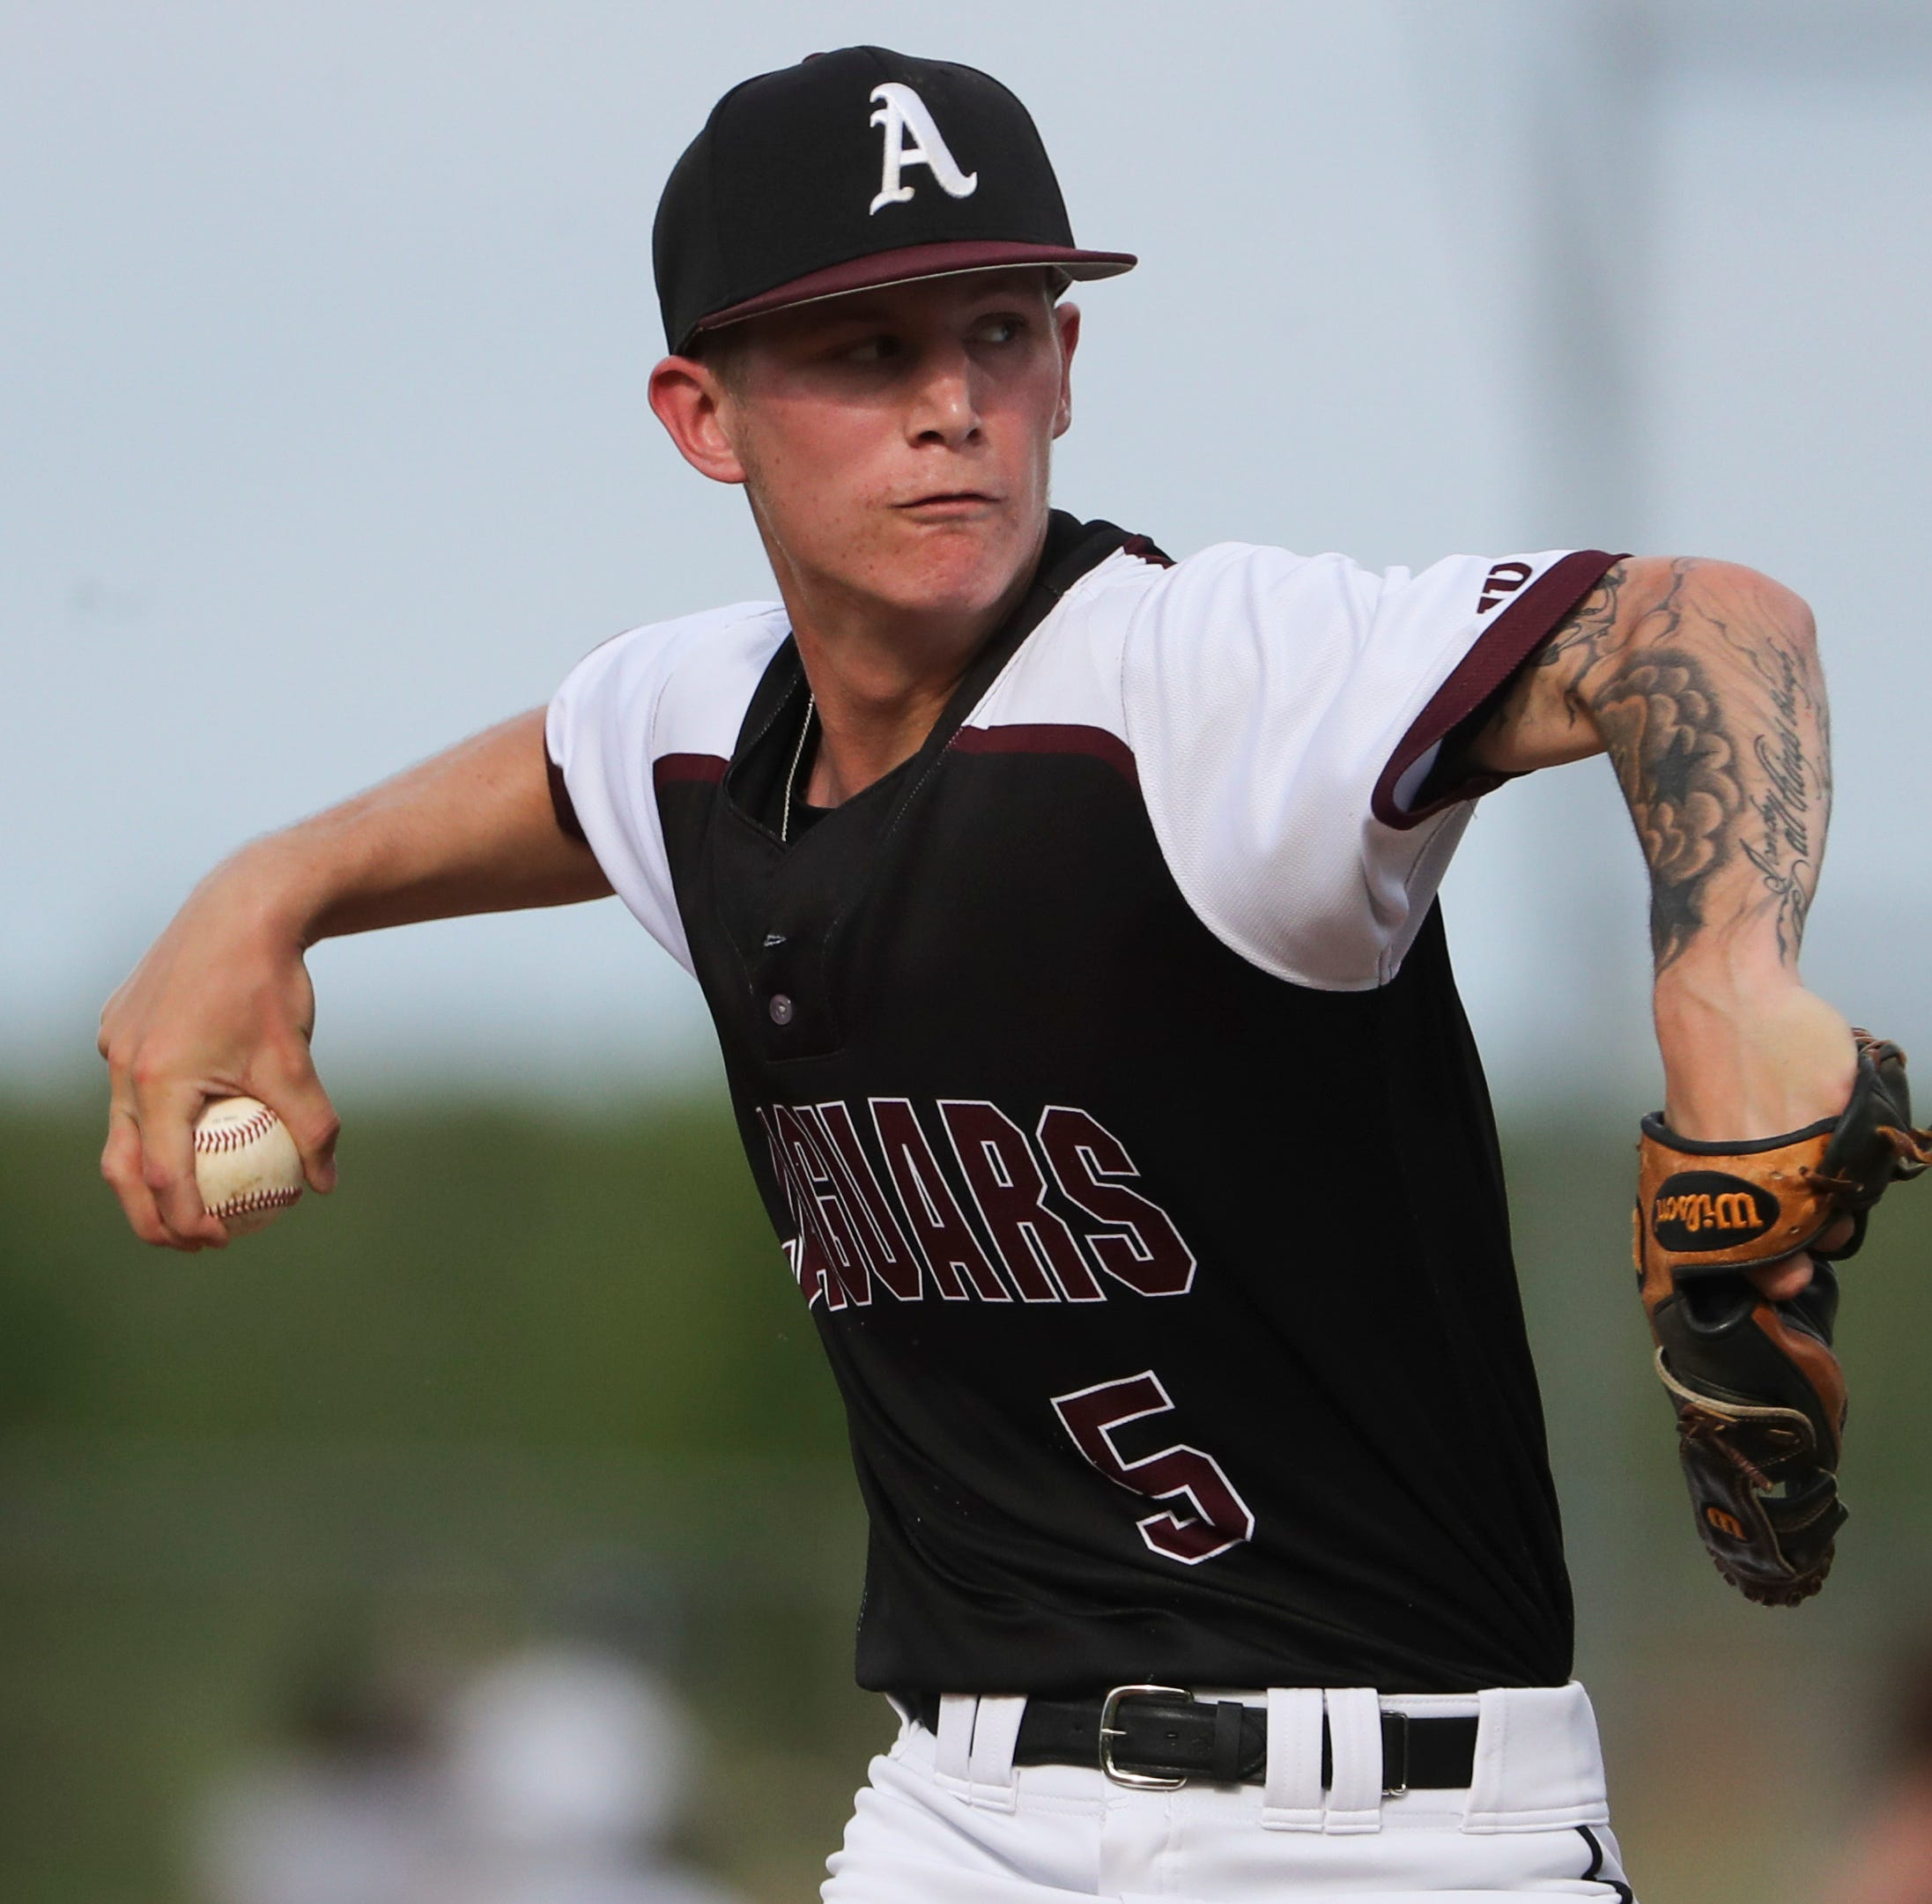 Appoquinimink pitcher heads Delaware All-State baseball team